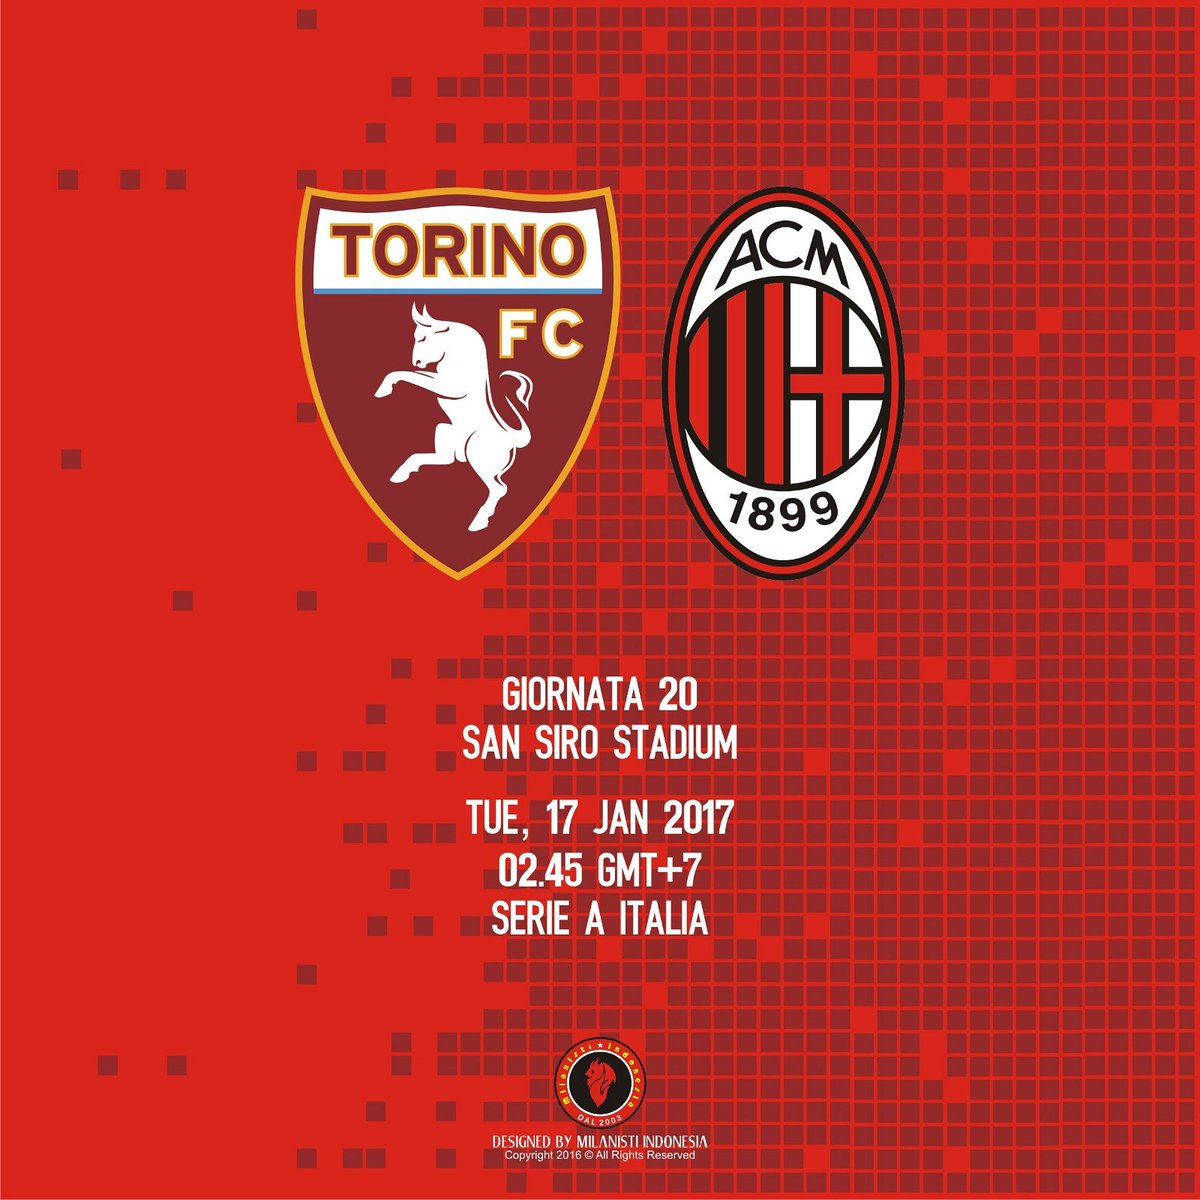 TORINO MILAN Streaming Gratis: vedere con Facebook Live e Video YouTube